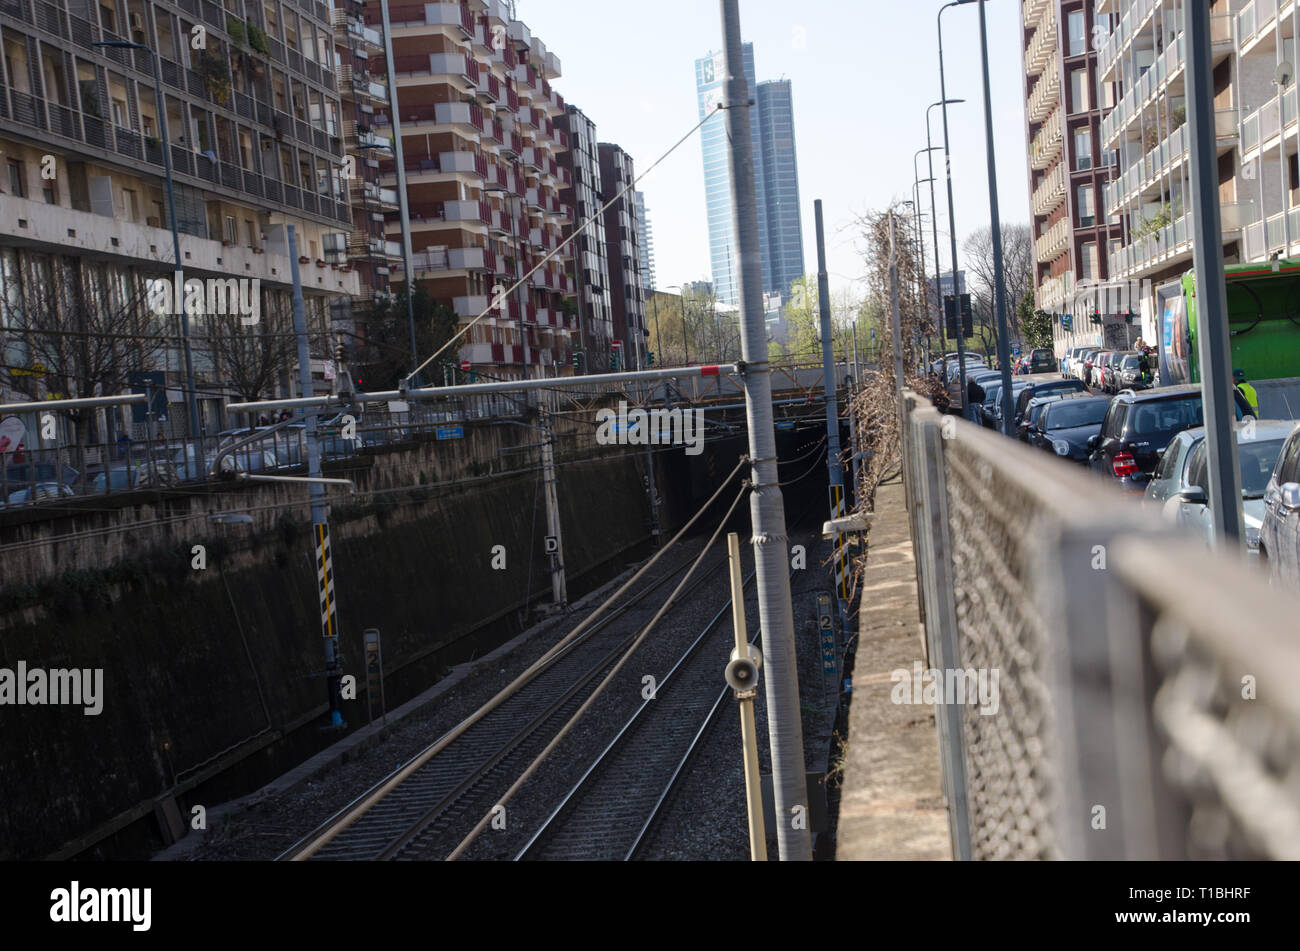 Railway at Maggiolina district in Milano. March 20th, 2019 - Stock Image